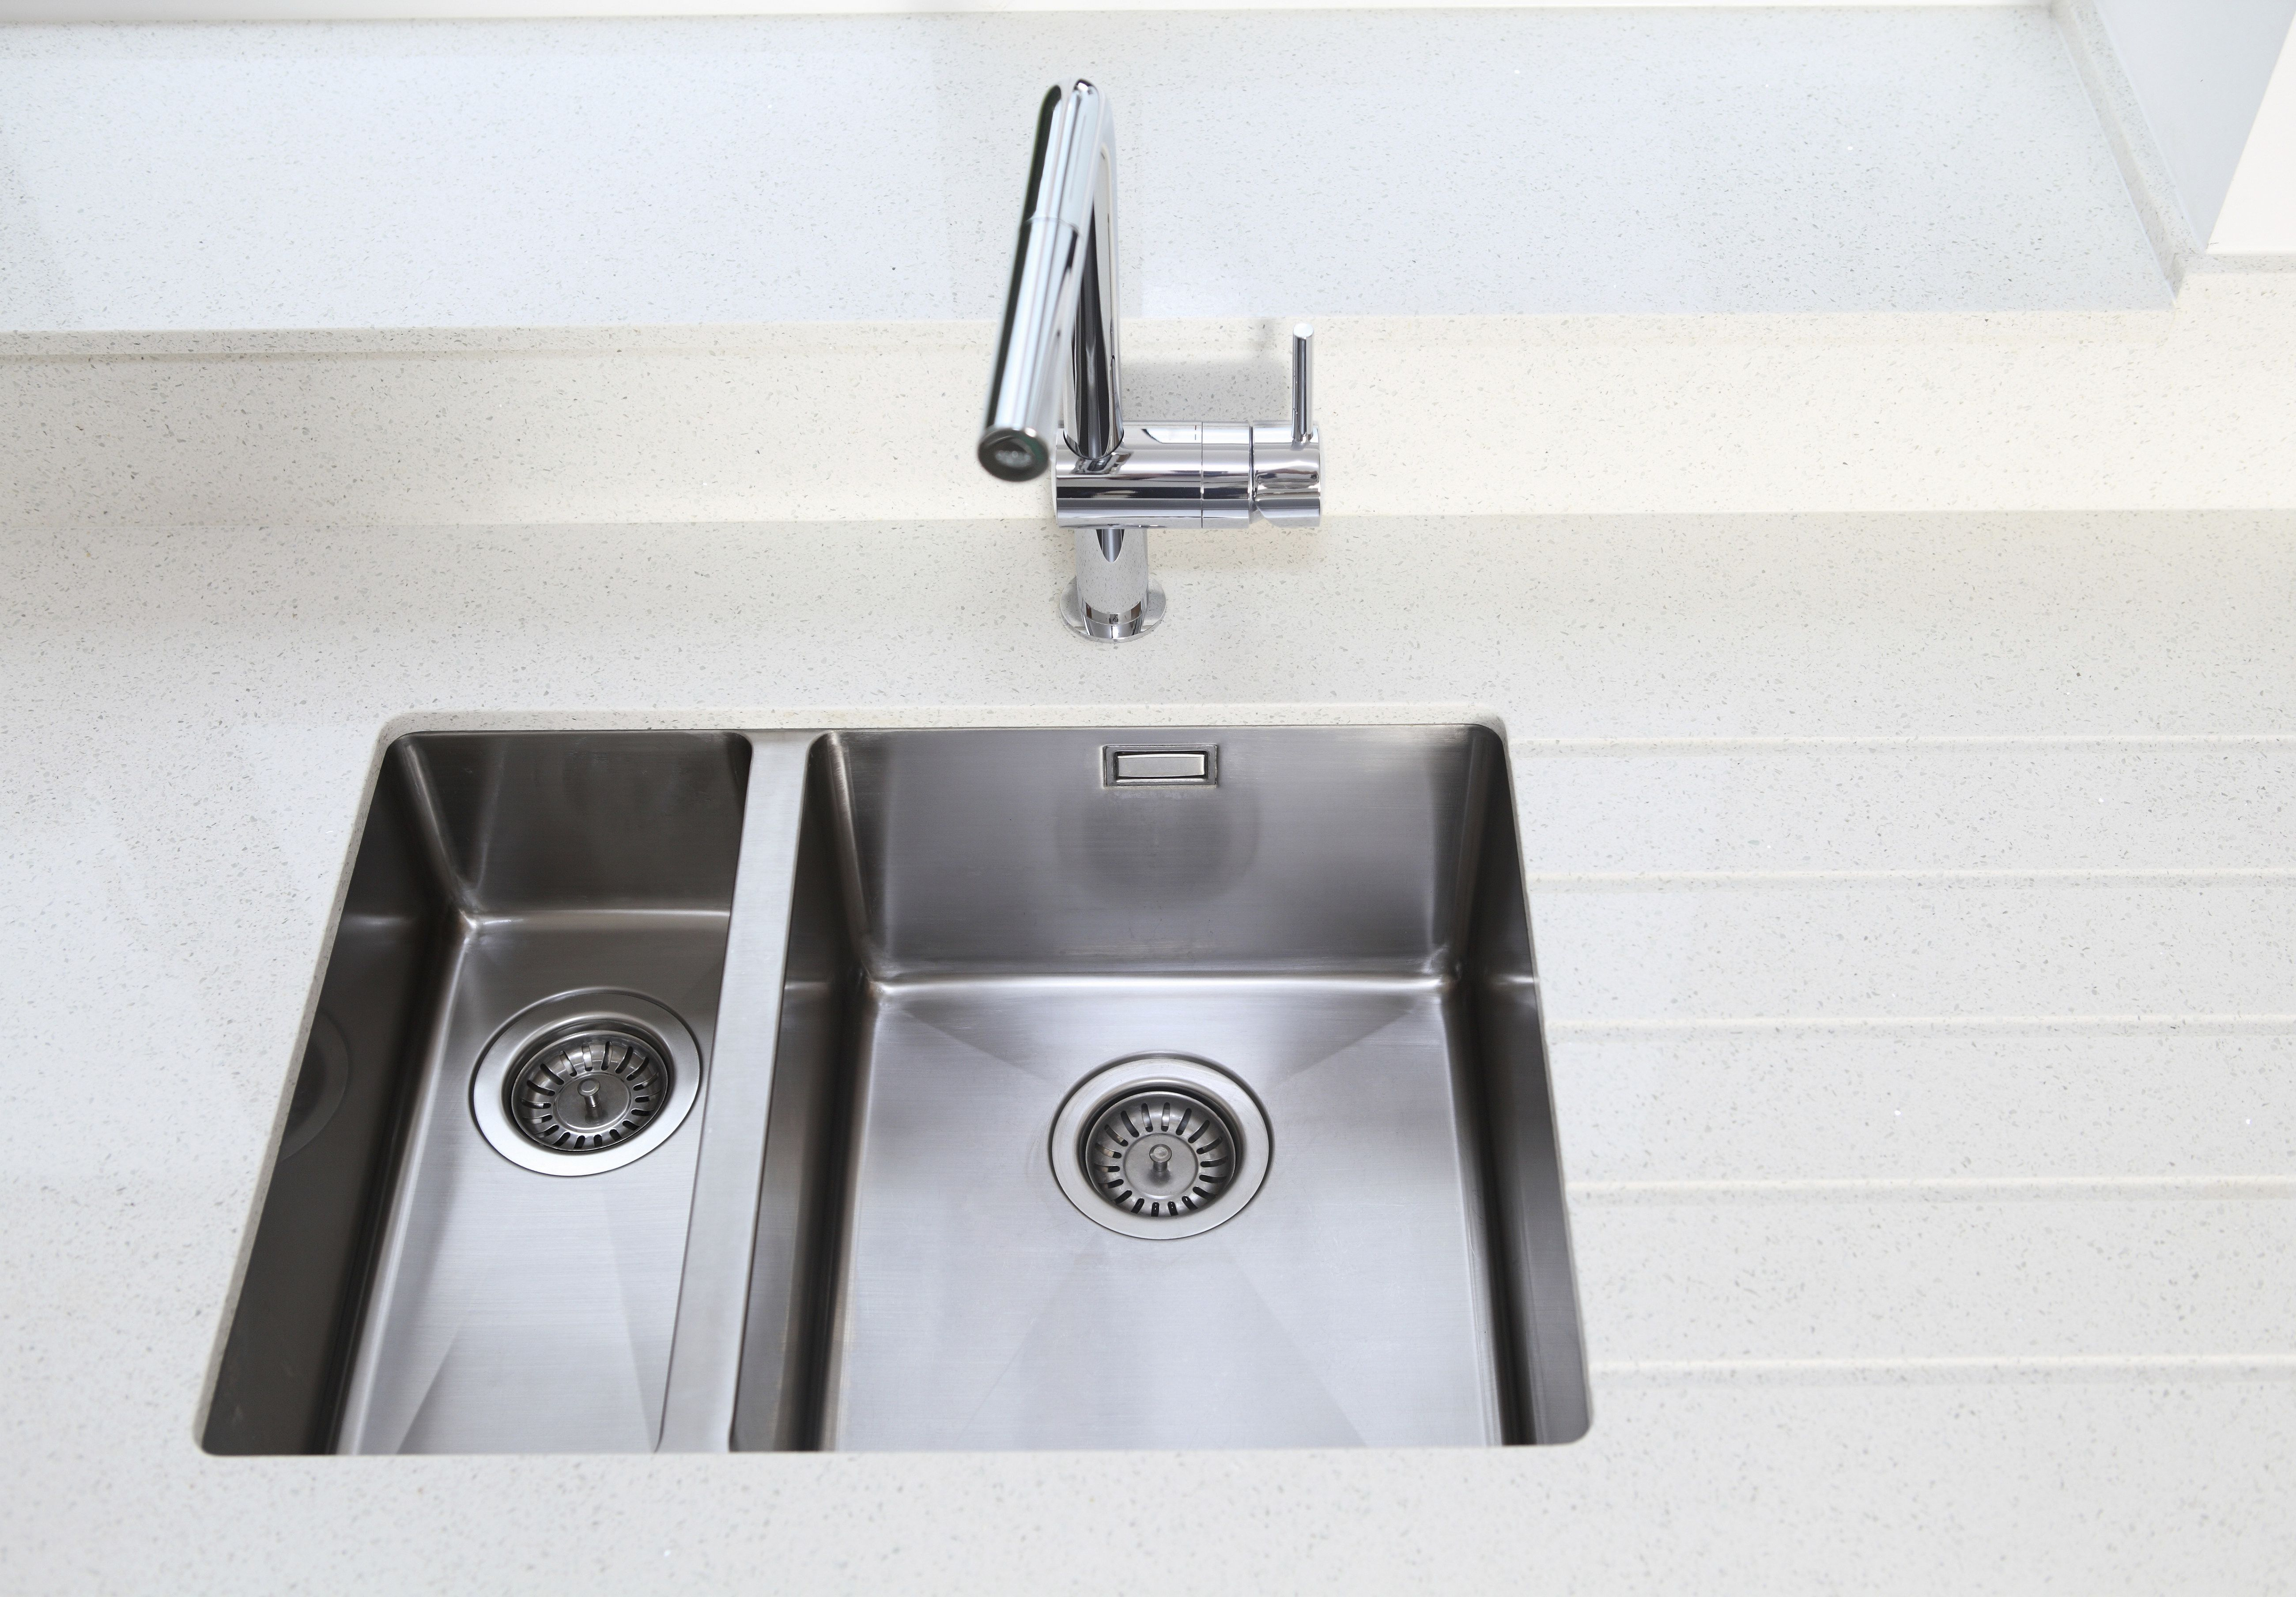 The Importance of Caulking With Undermount Sinks